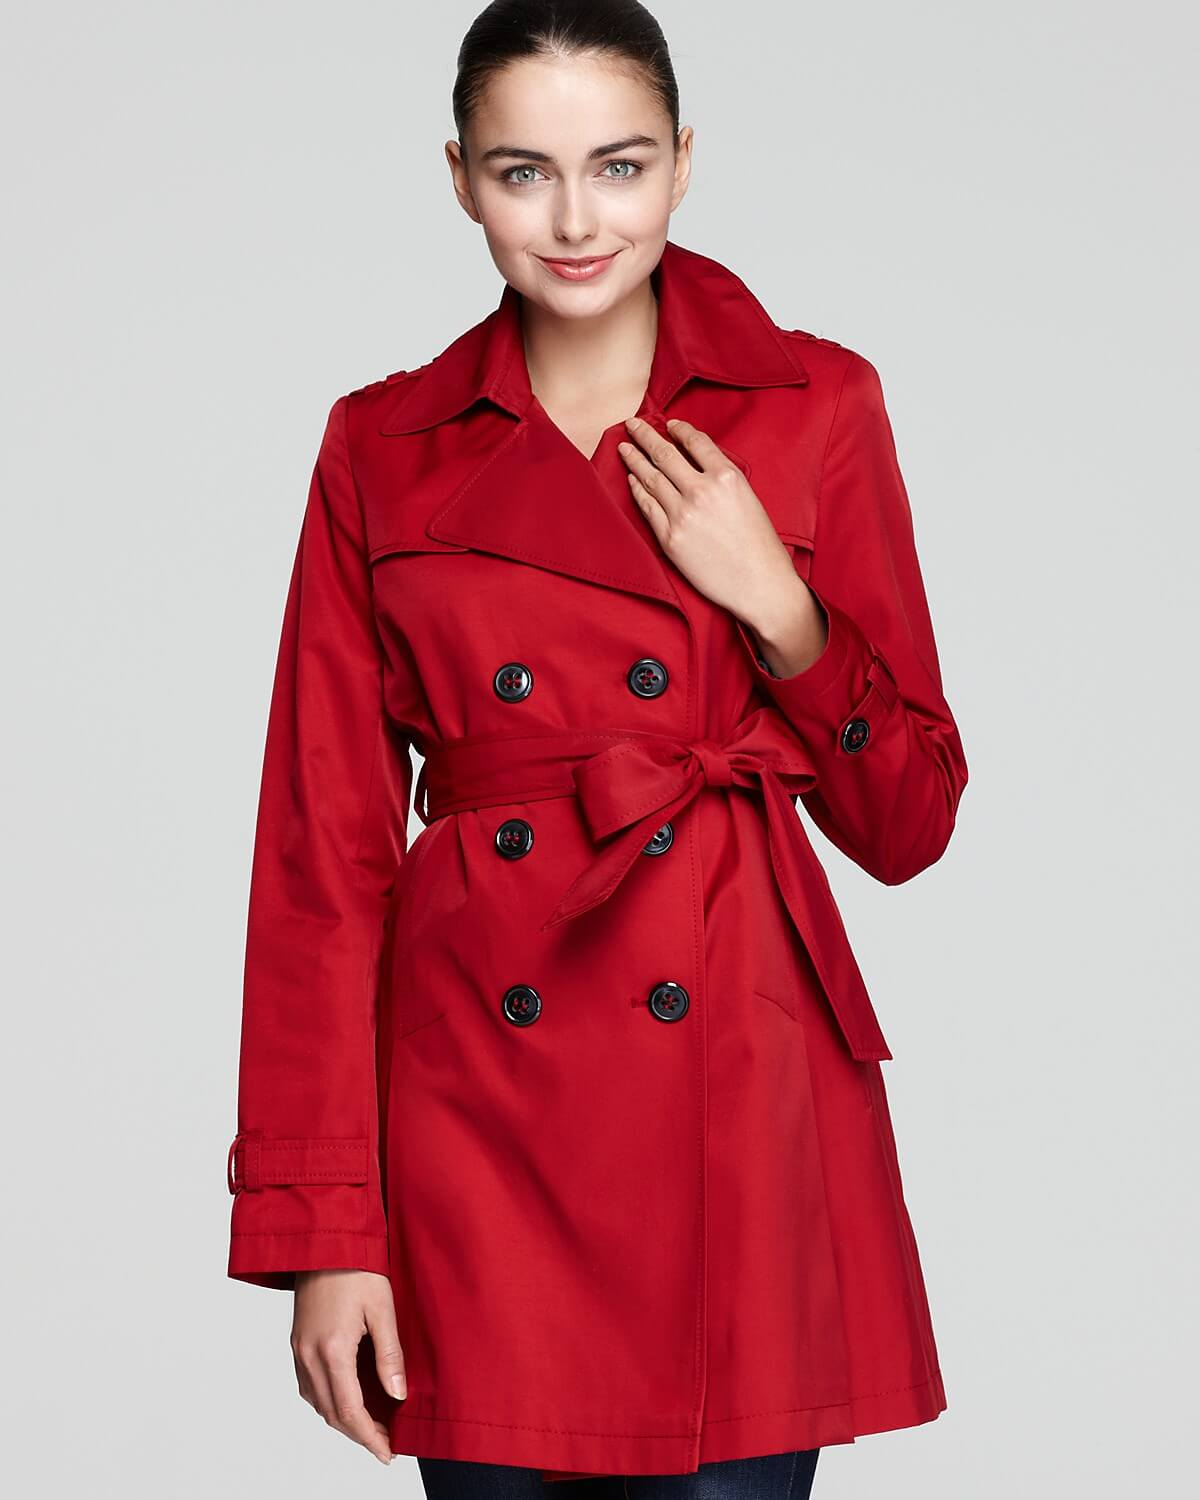 A double-breasted garment is a coat, jacket, or vest with wide, overlapping front flaps which has on its front two symmetrical columns of buttons; by contrast, a single-breasted item has a narrow overlap and only one column of buttons. In most modern double-breasted coats, one column of buttons is decorative, while the other is functional.